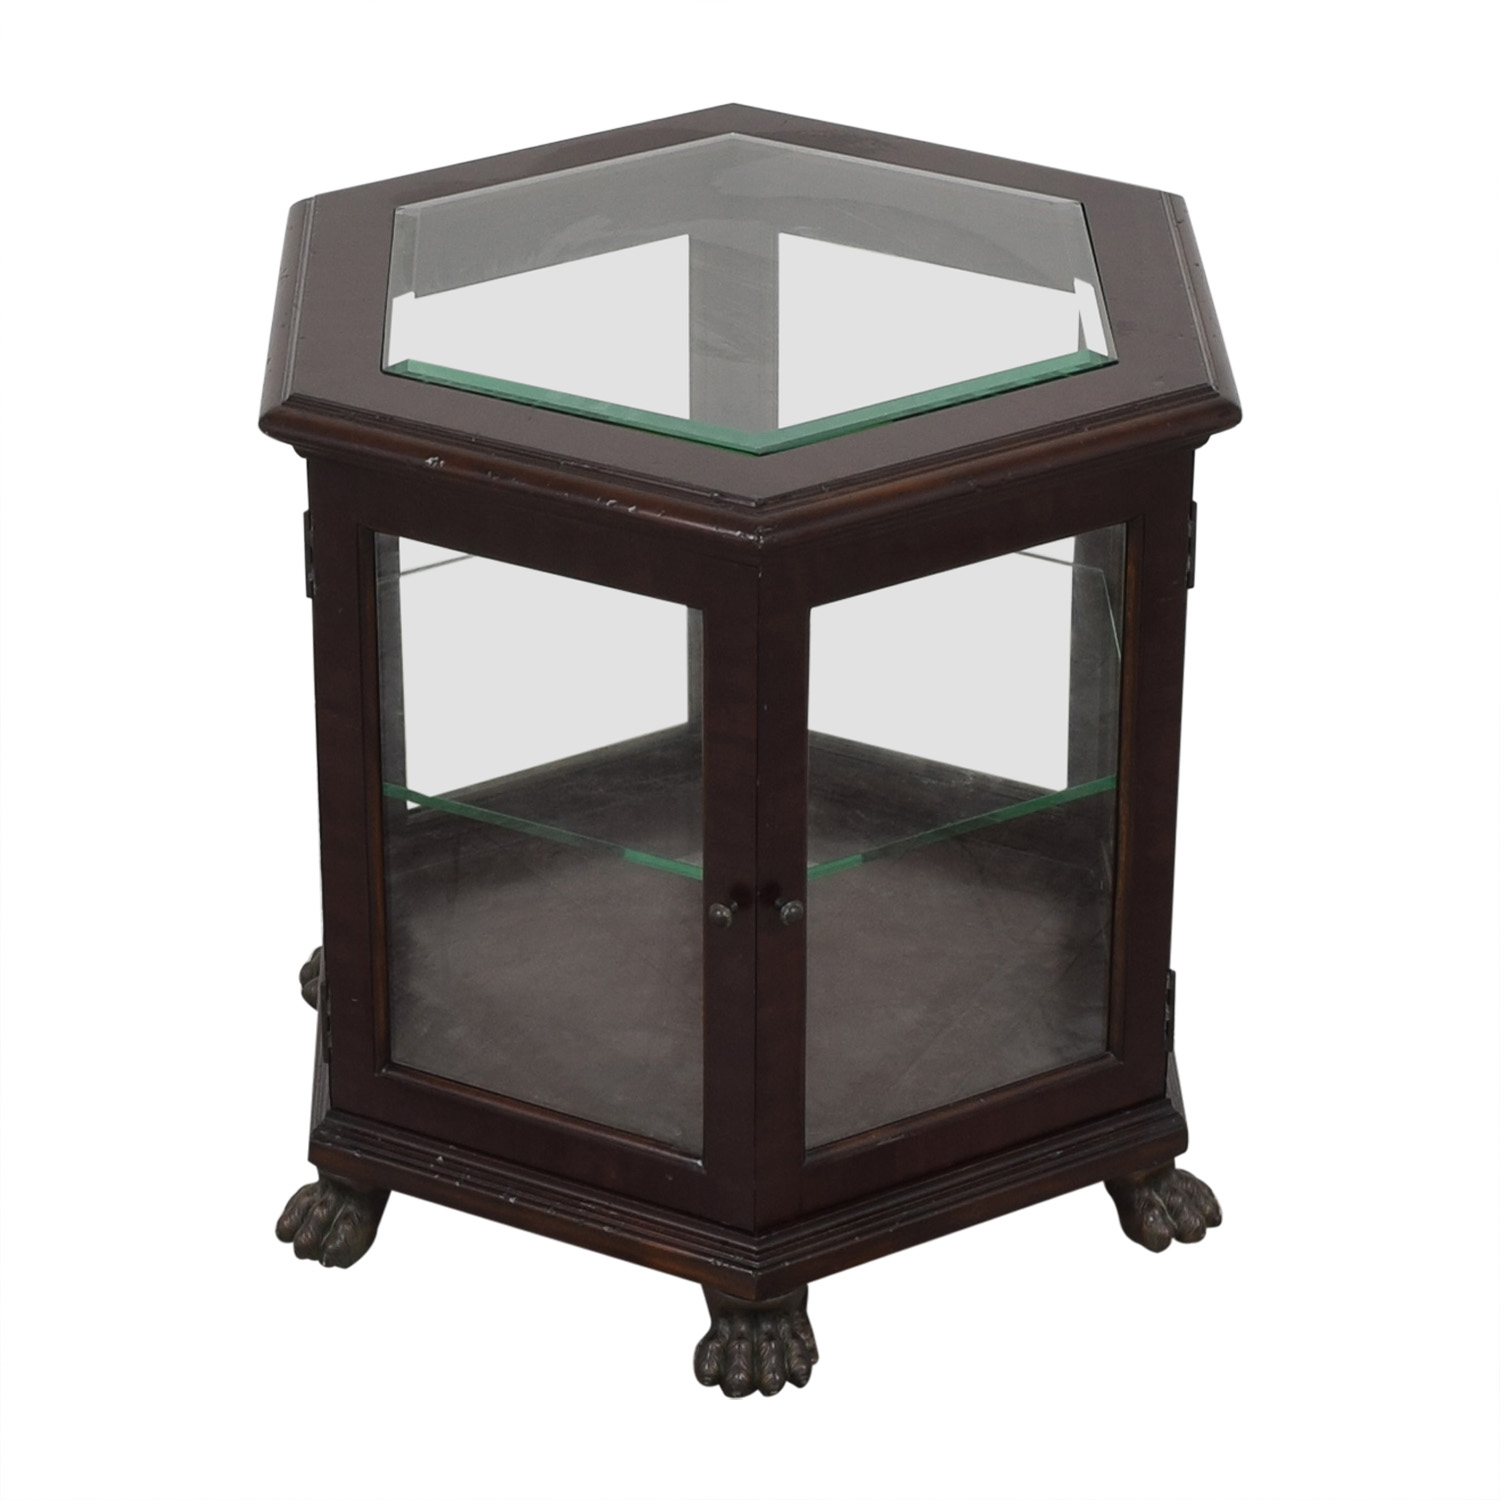 Thomasville Hexagon End Table sale